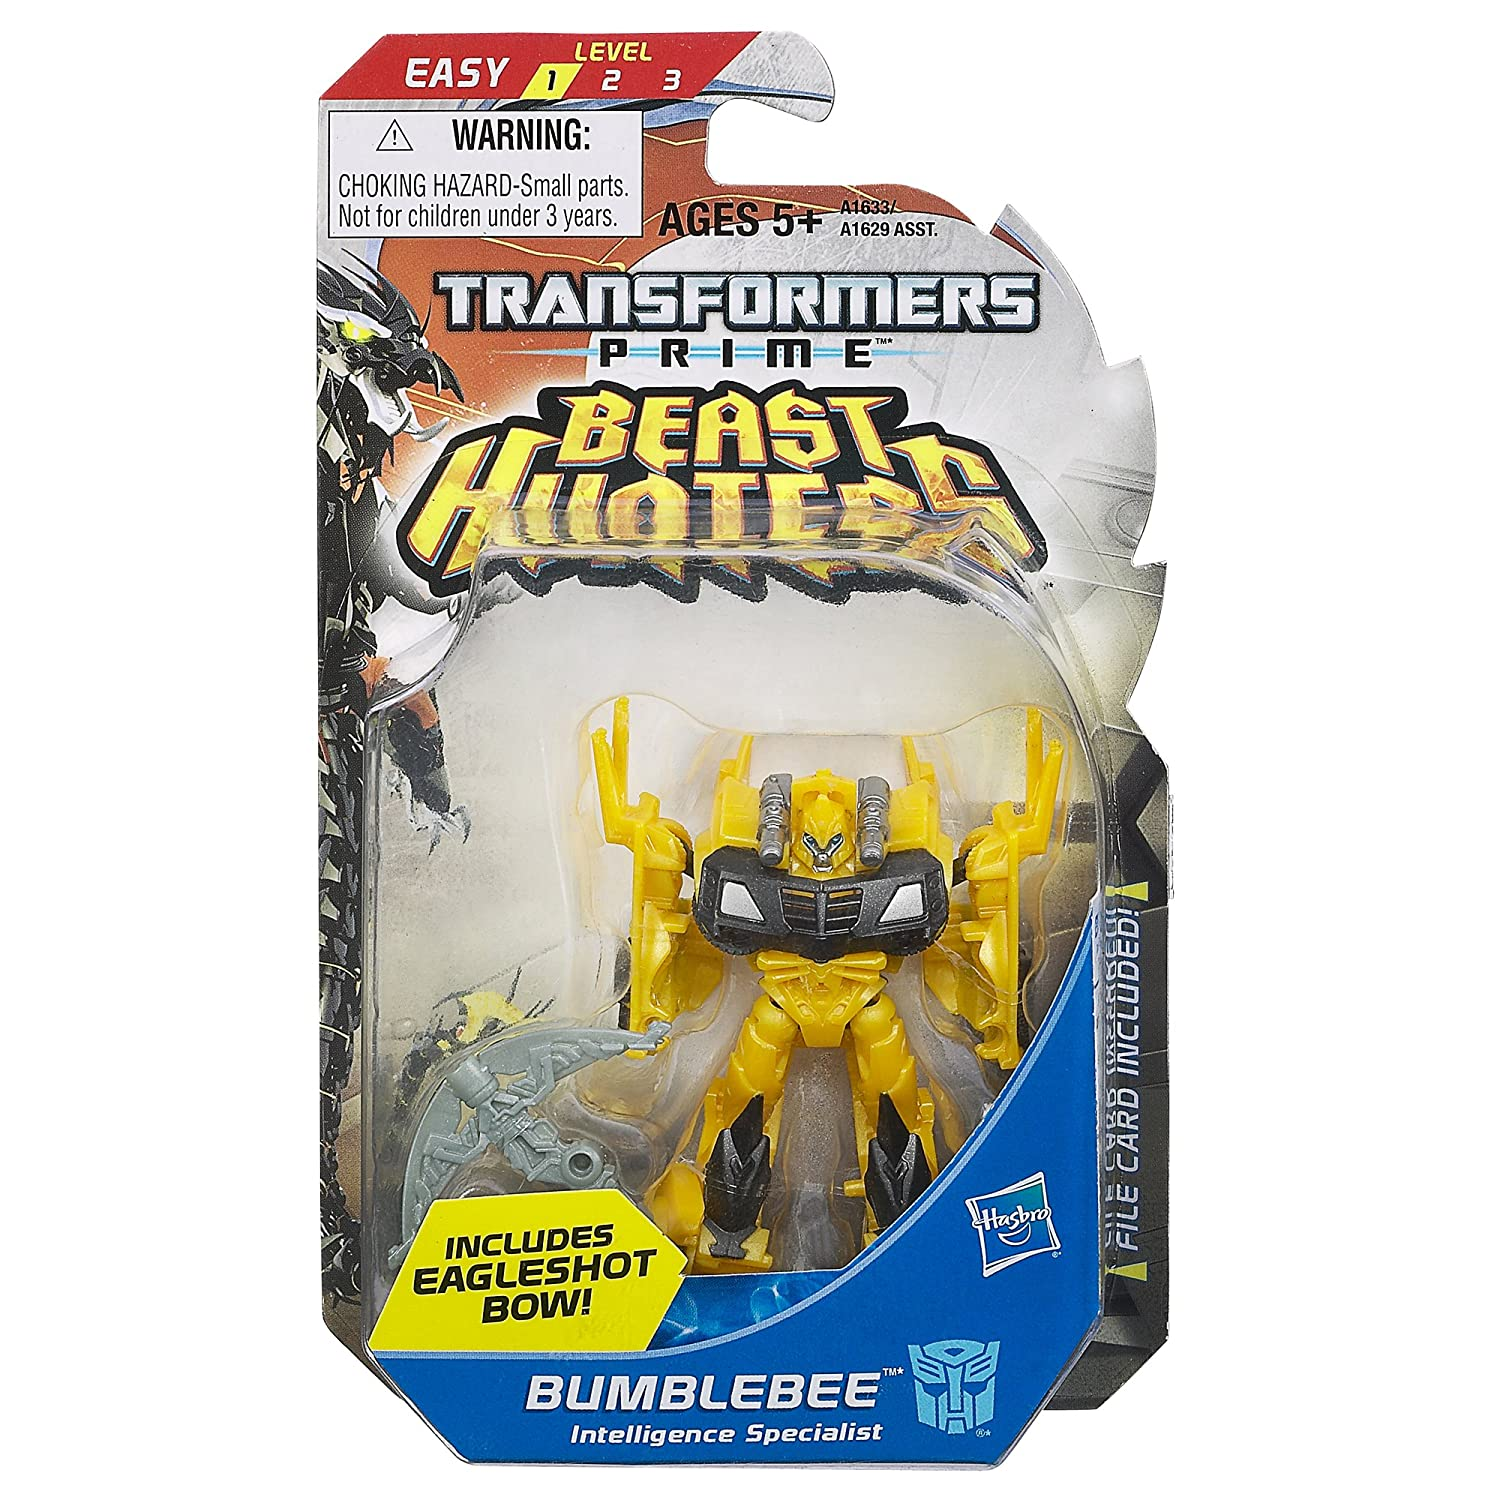 amazon com transformers prime beast hunters legion class action